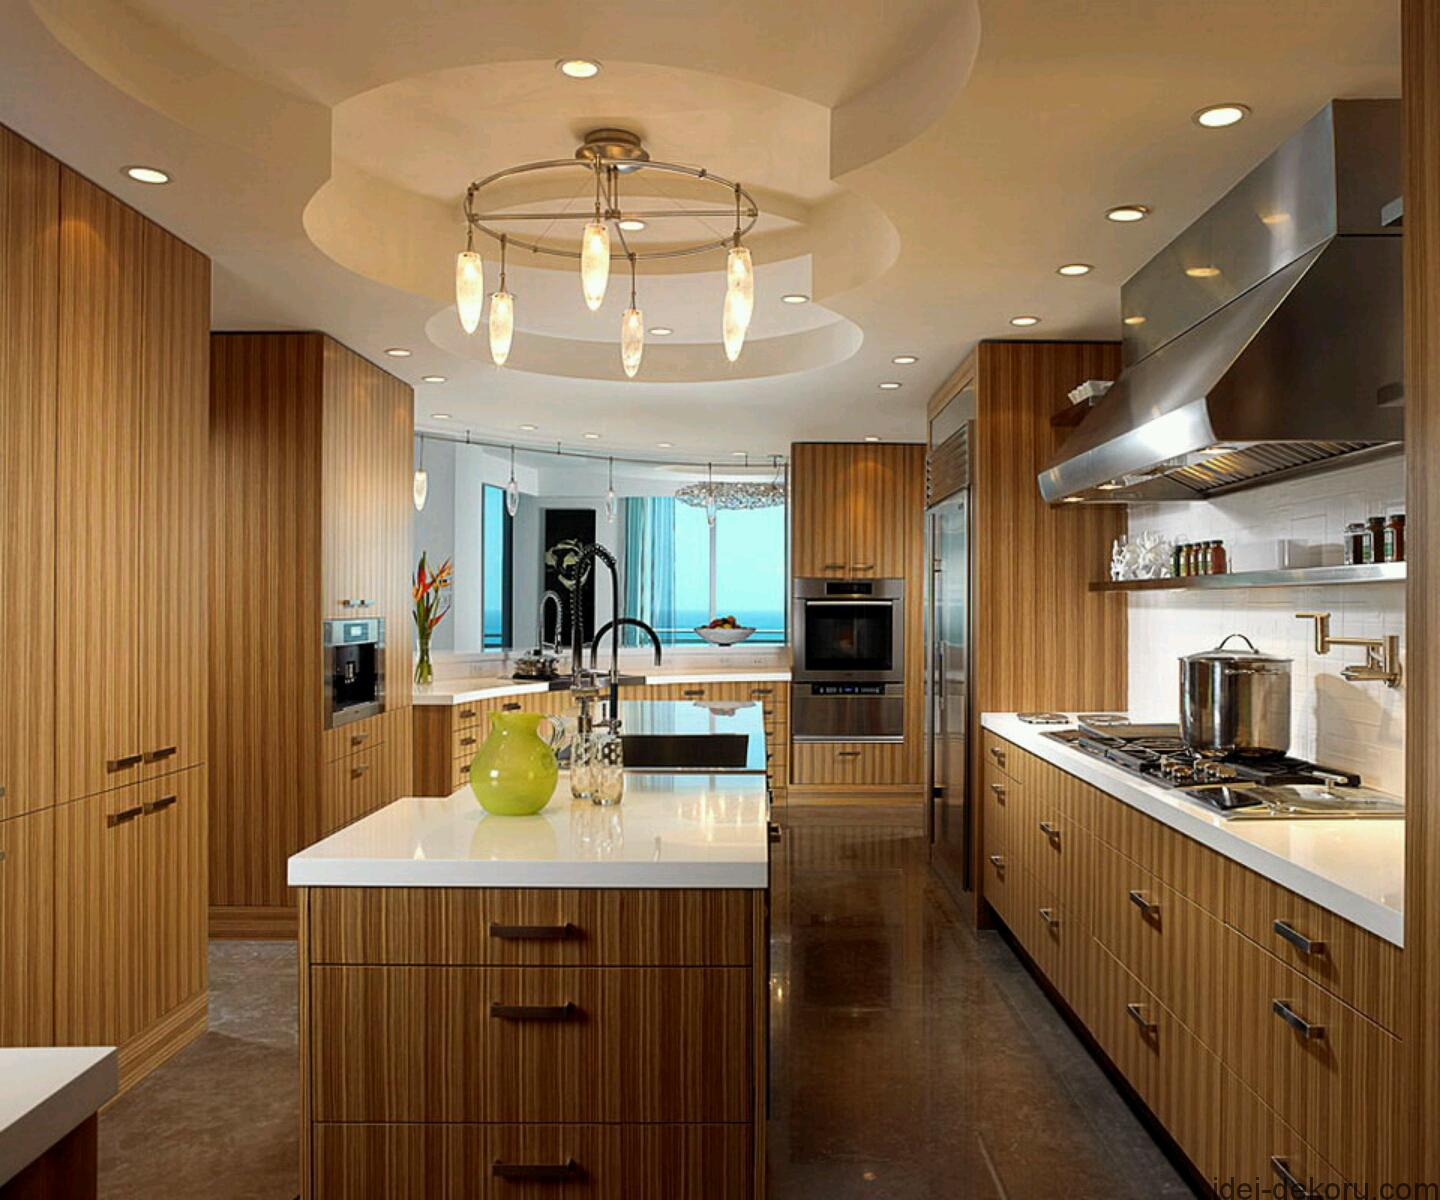 Modern wooden kitchen cabinets designs. (2)